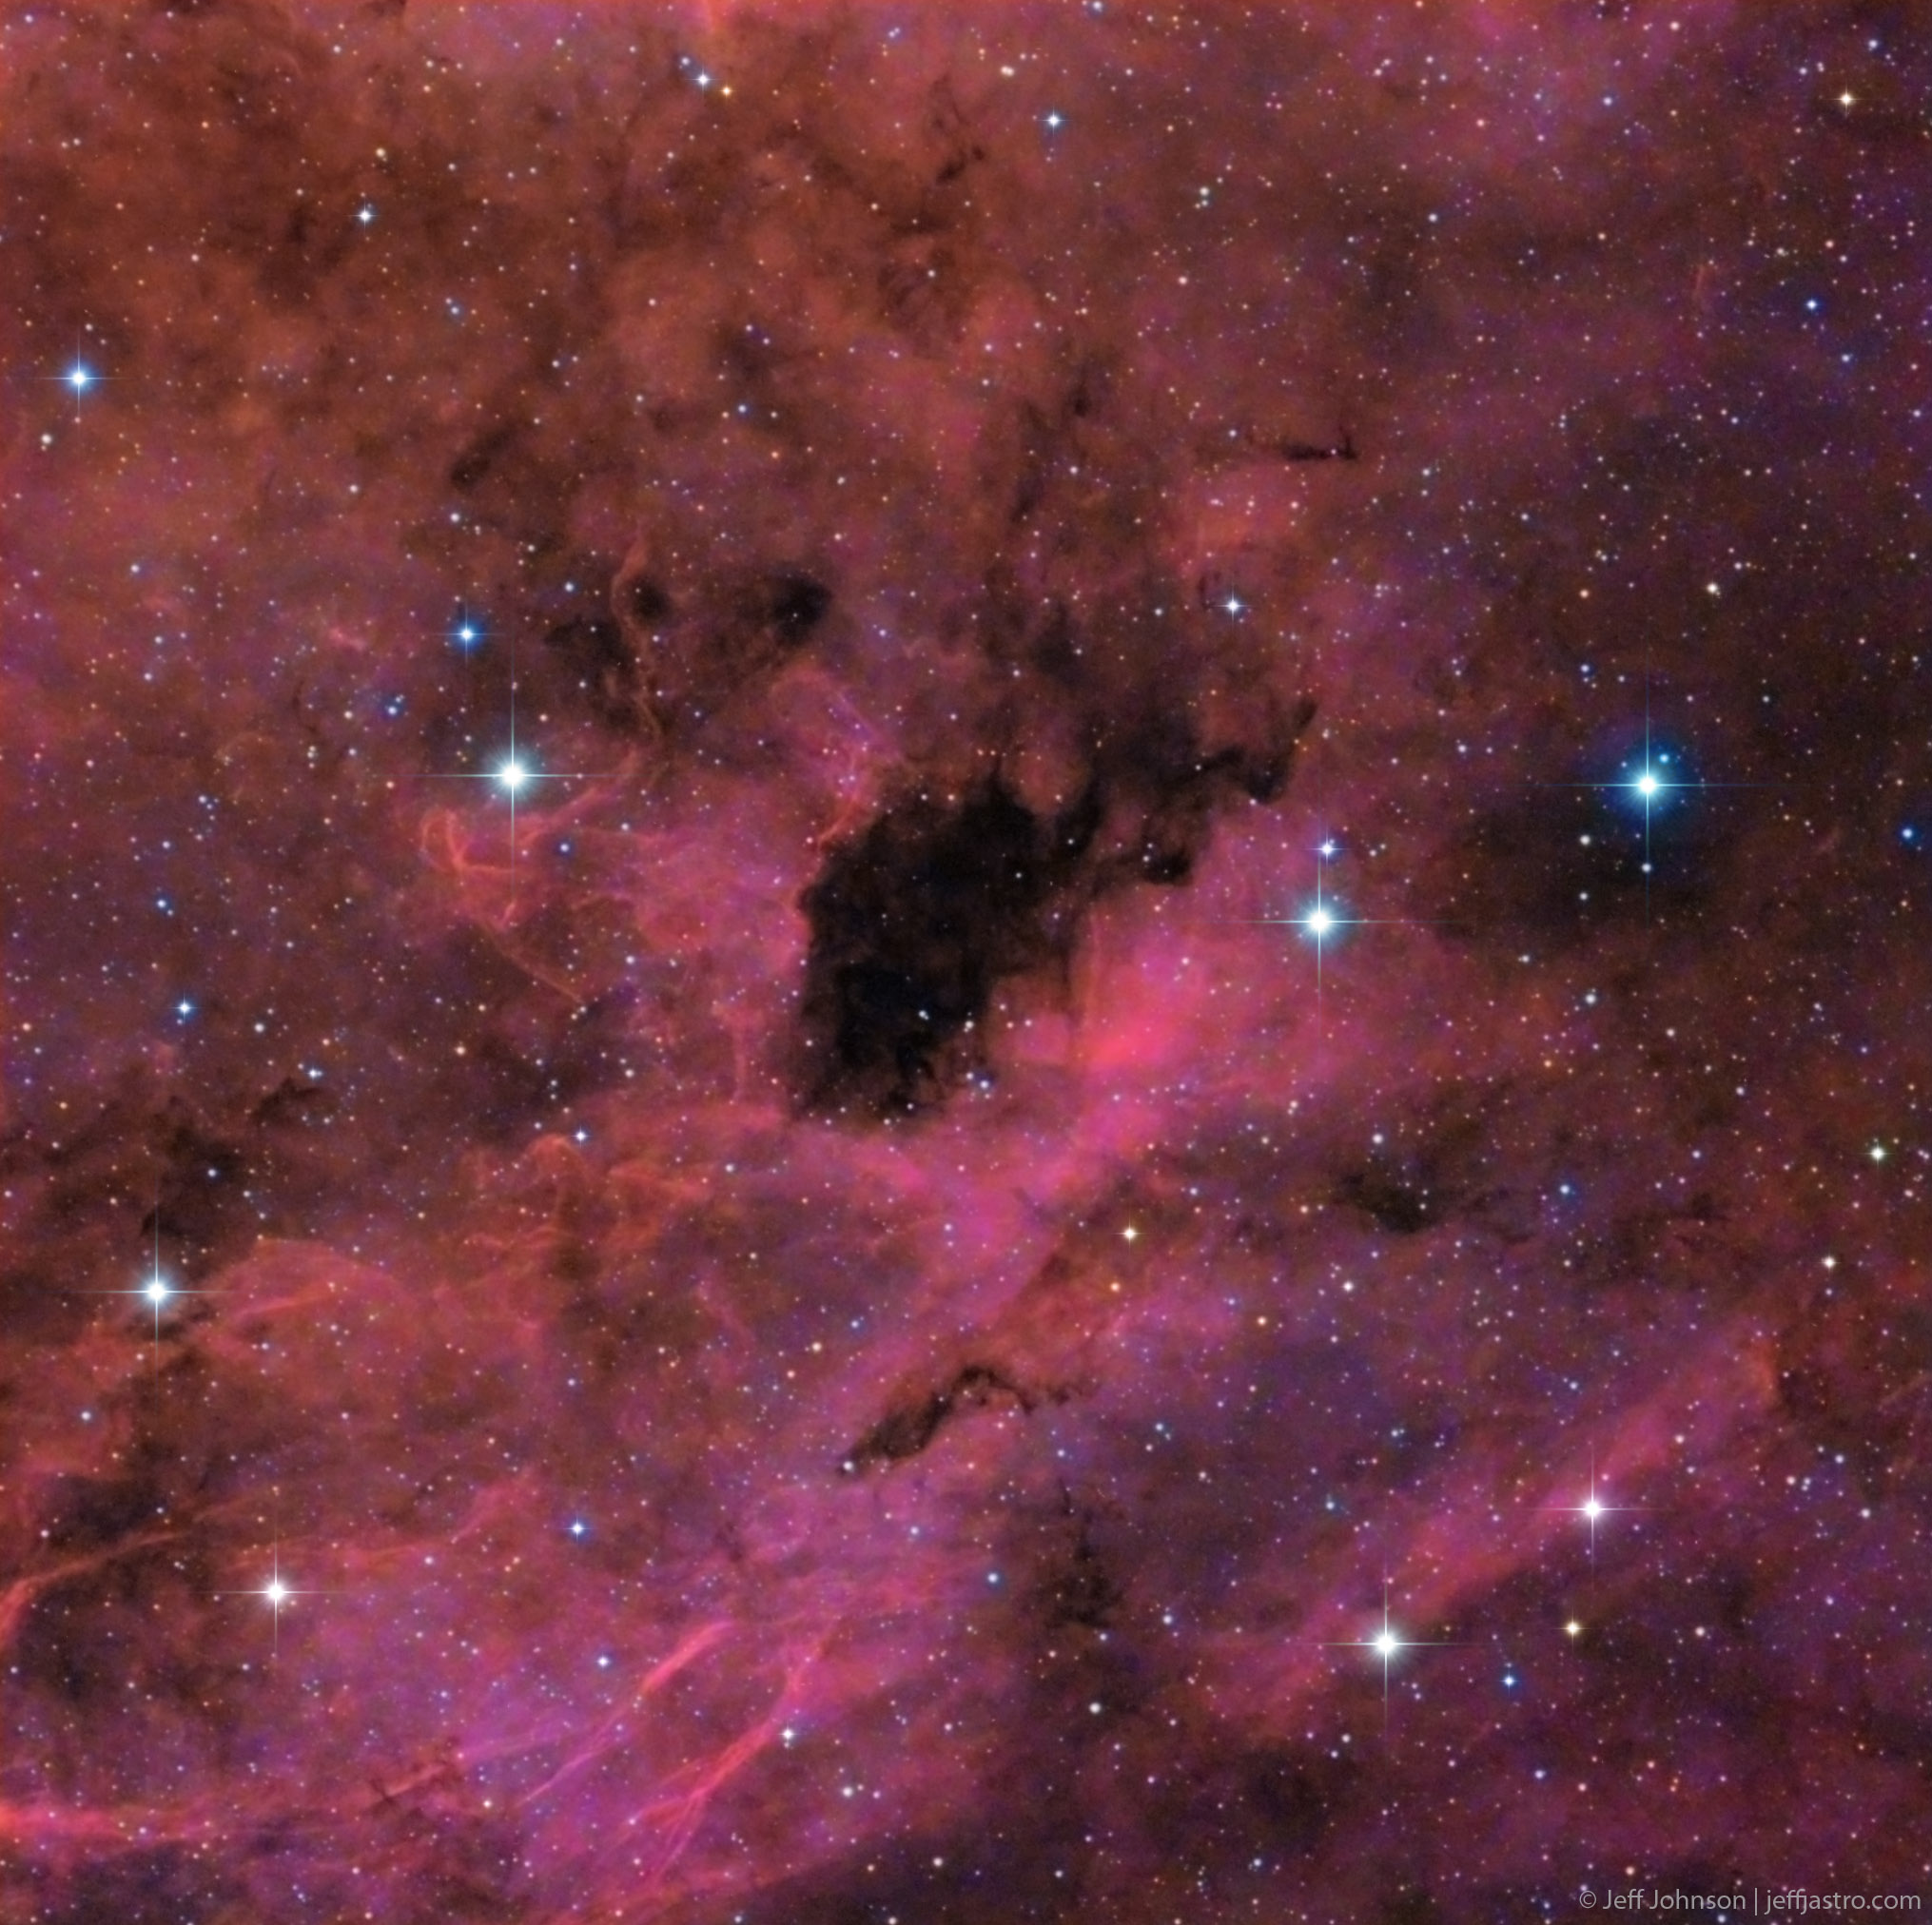 Dark Nebula Glows Red in Amateur Astronomer's Photo